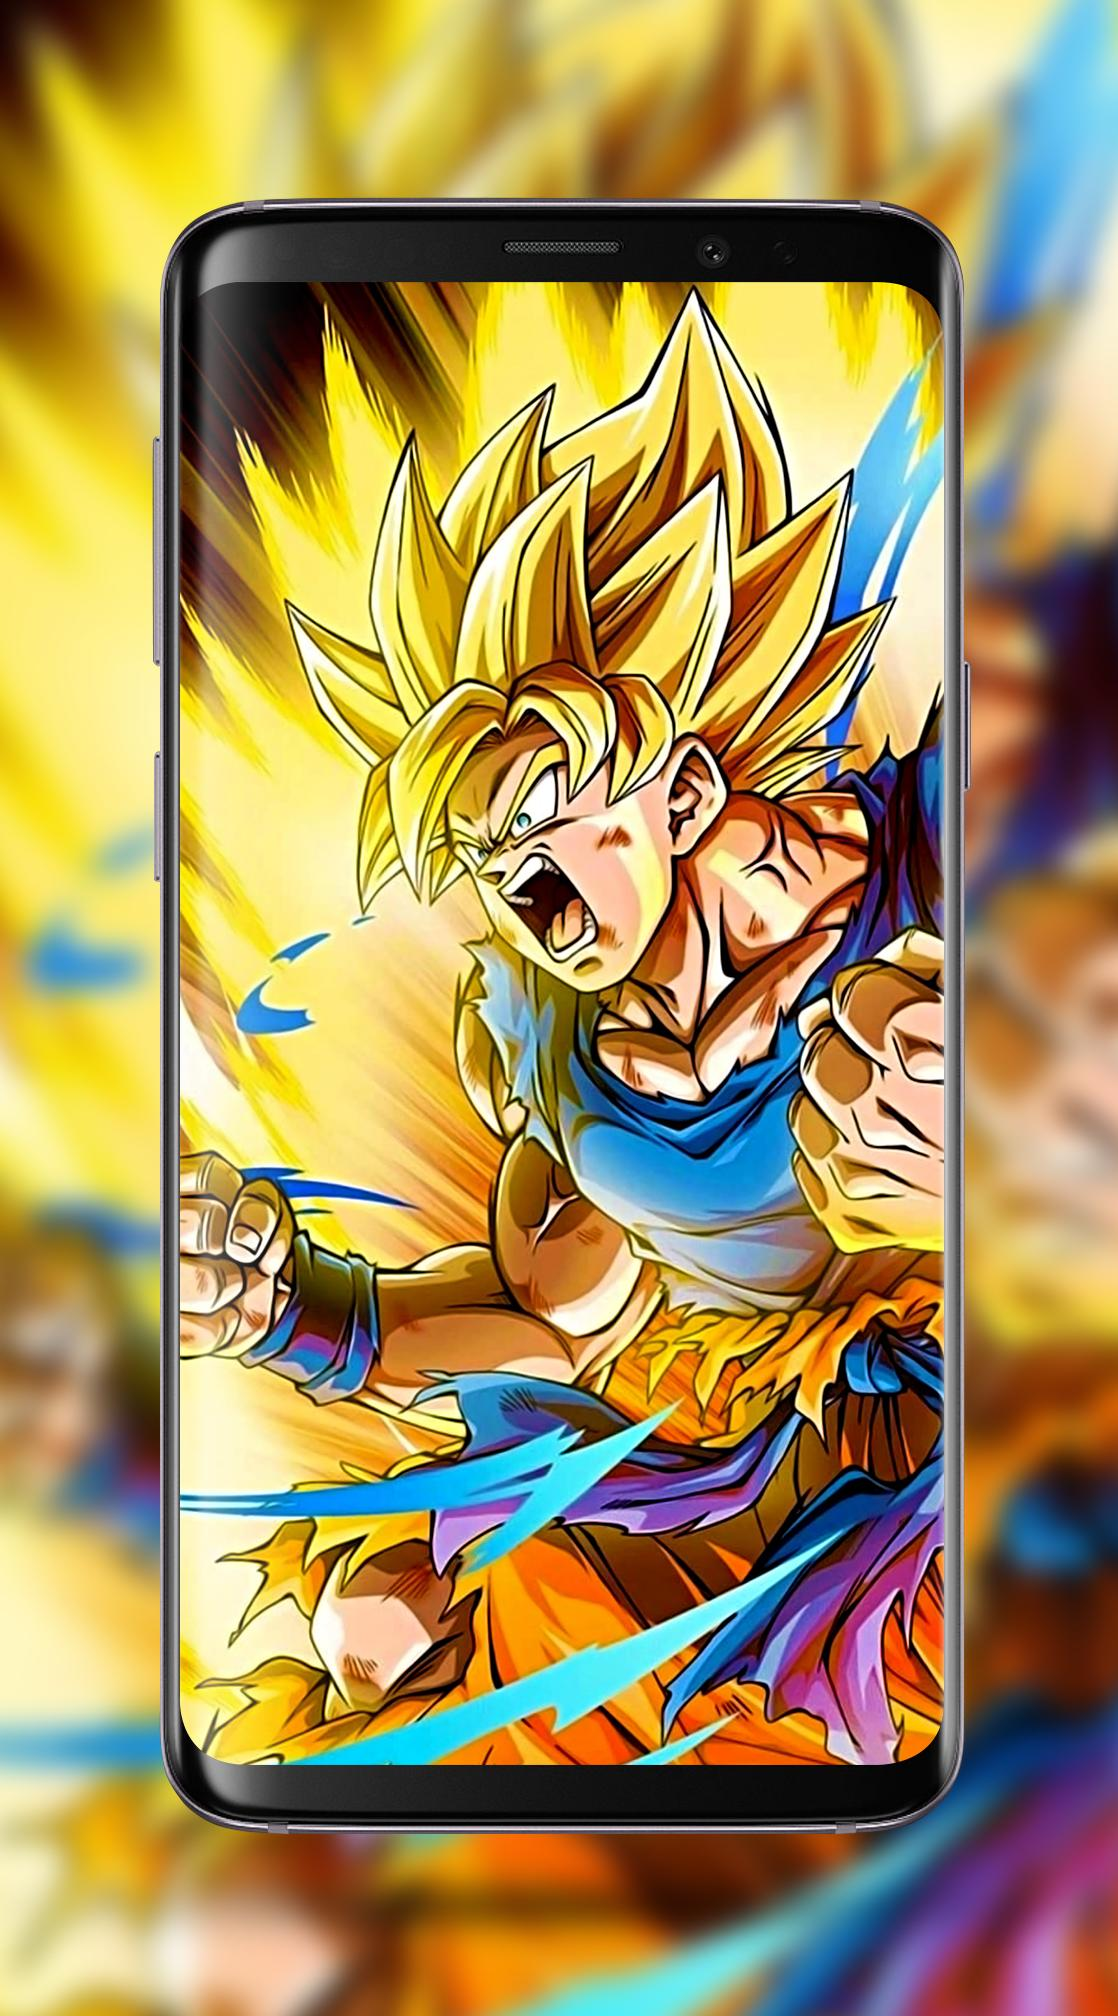 Broly Movie Db Super Wallpaper 4k For Android Apk Download